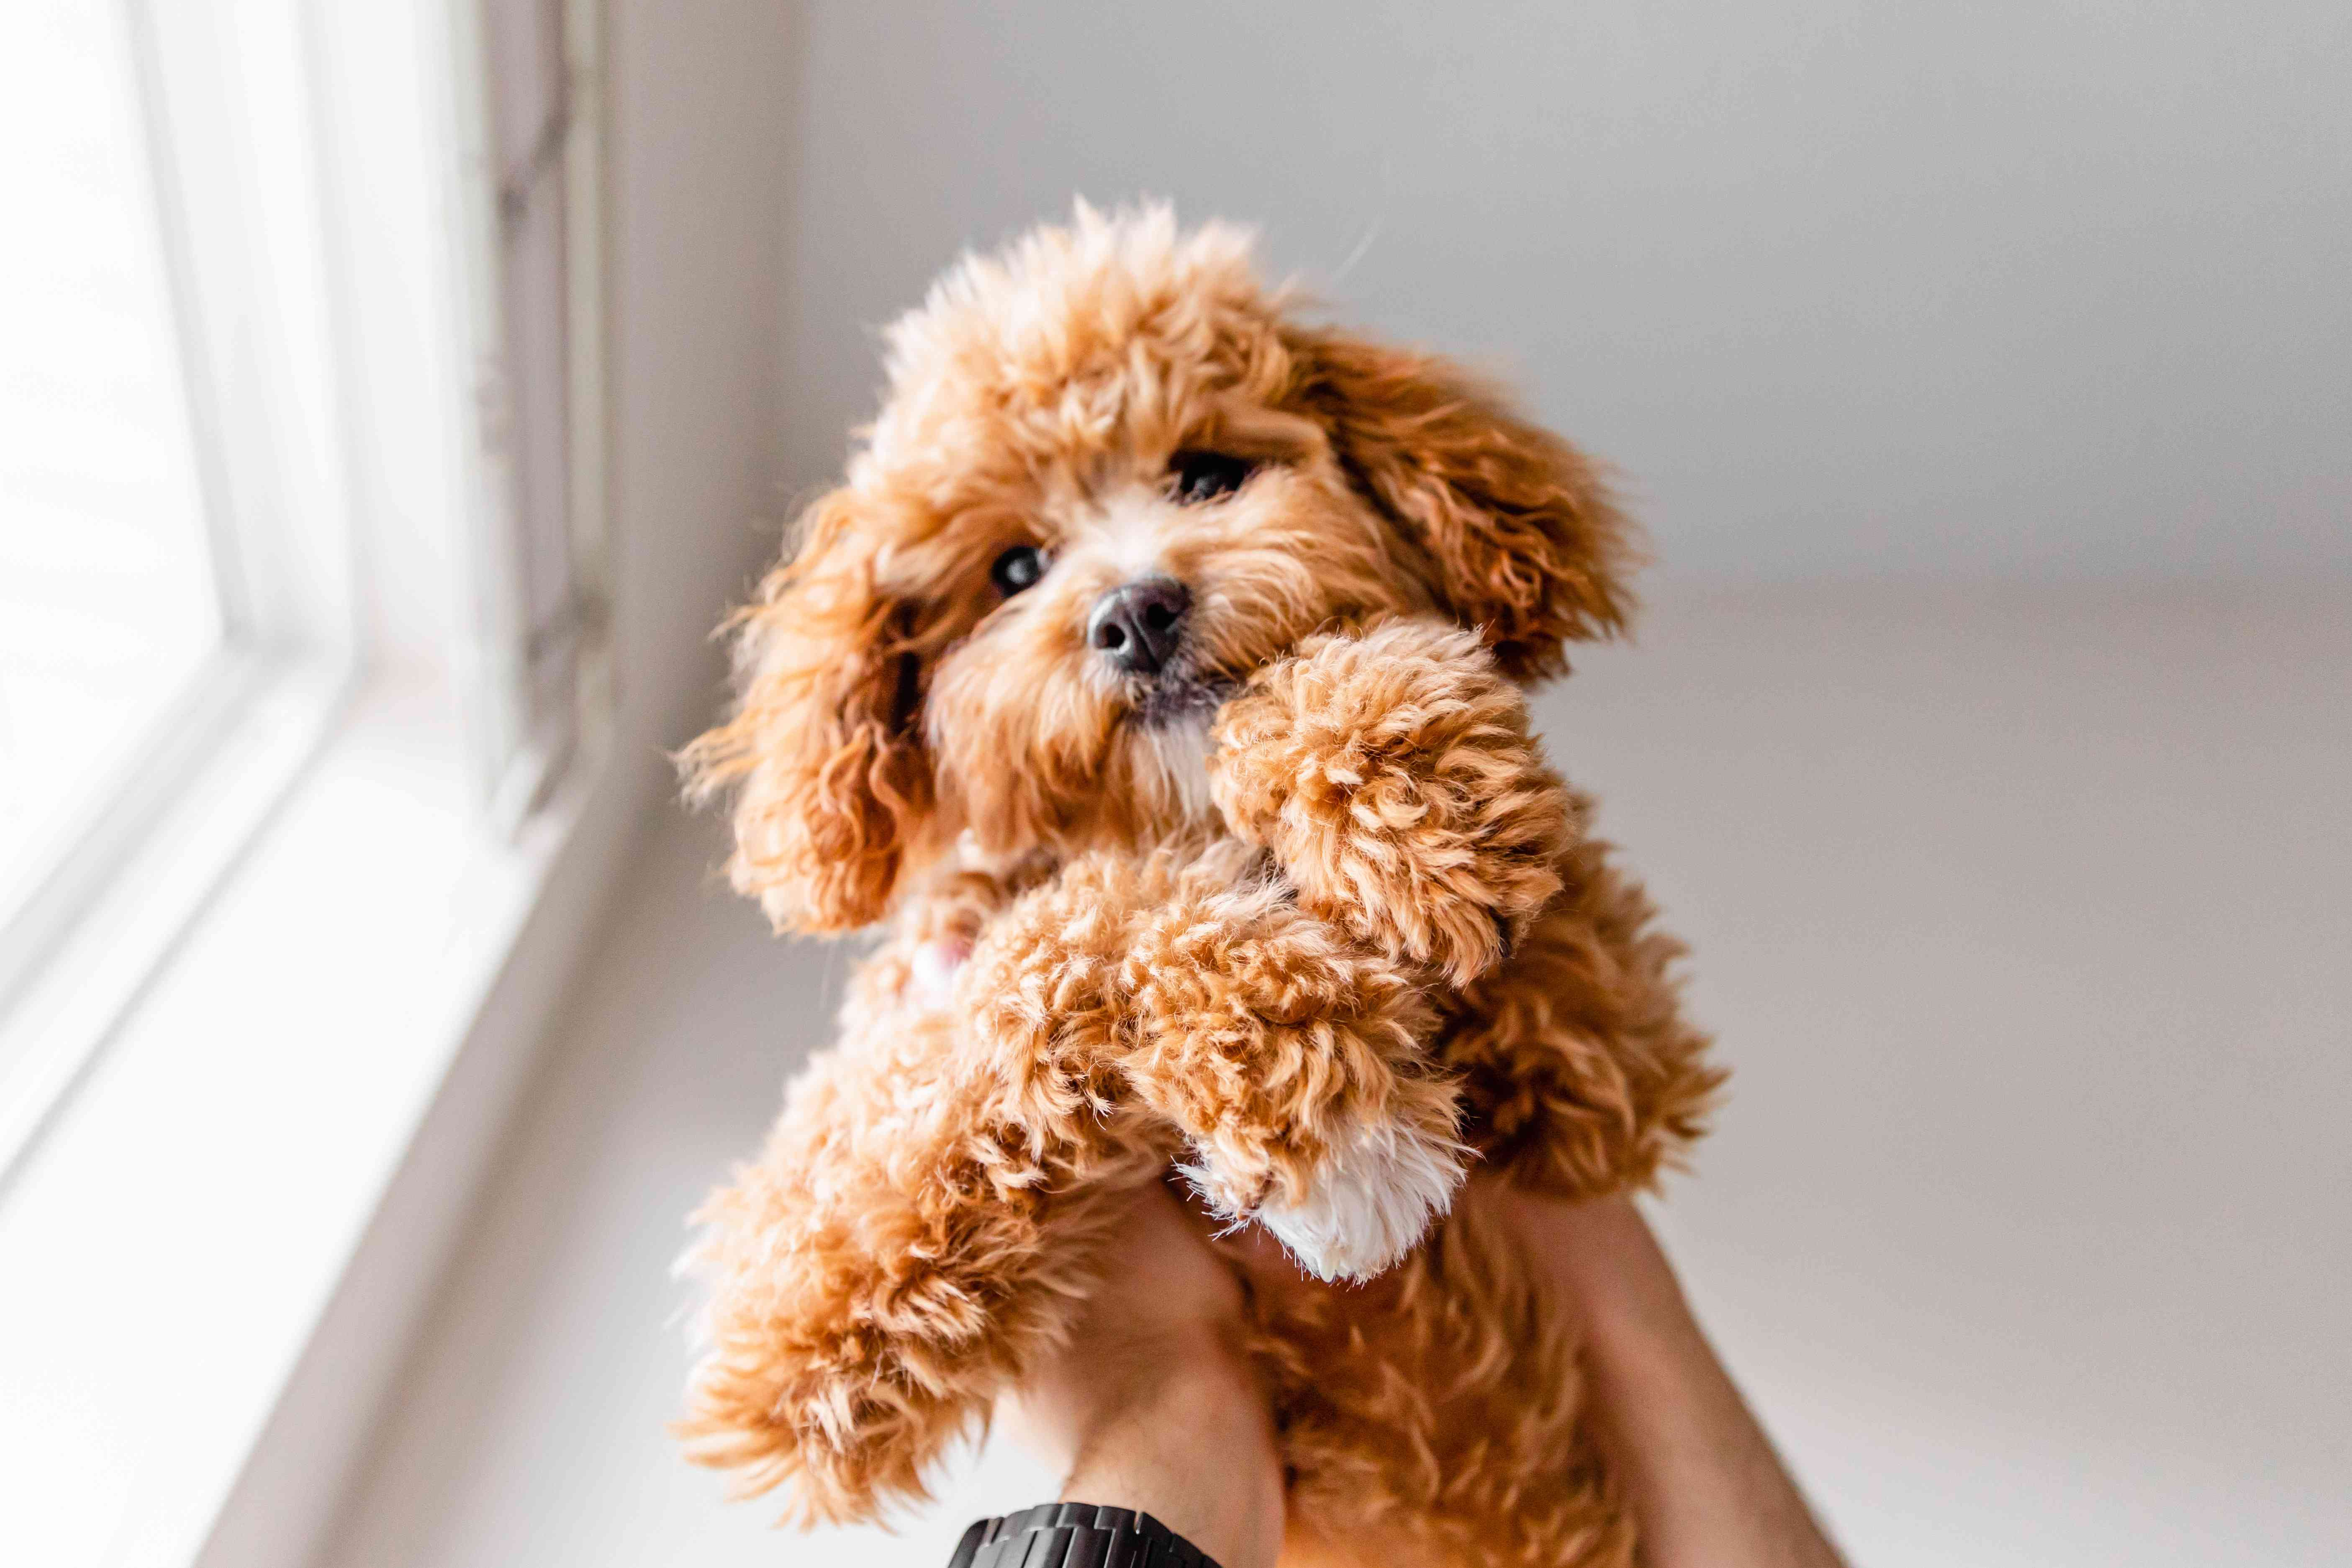 Light brown and fluffy puppy held up in the air